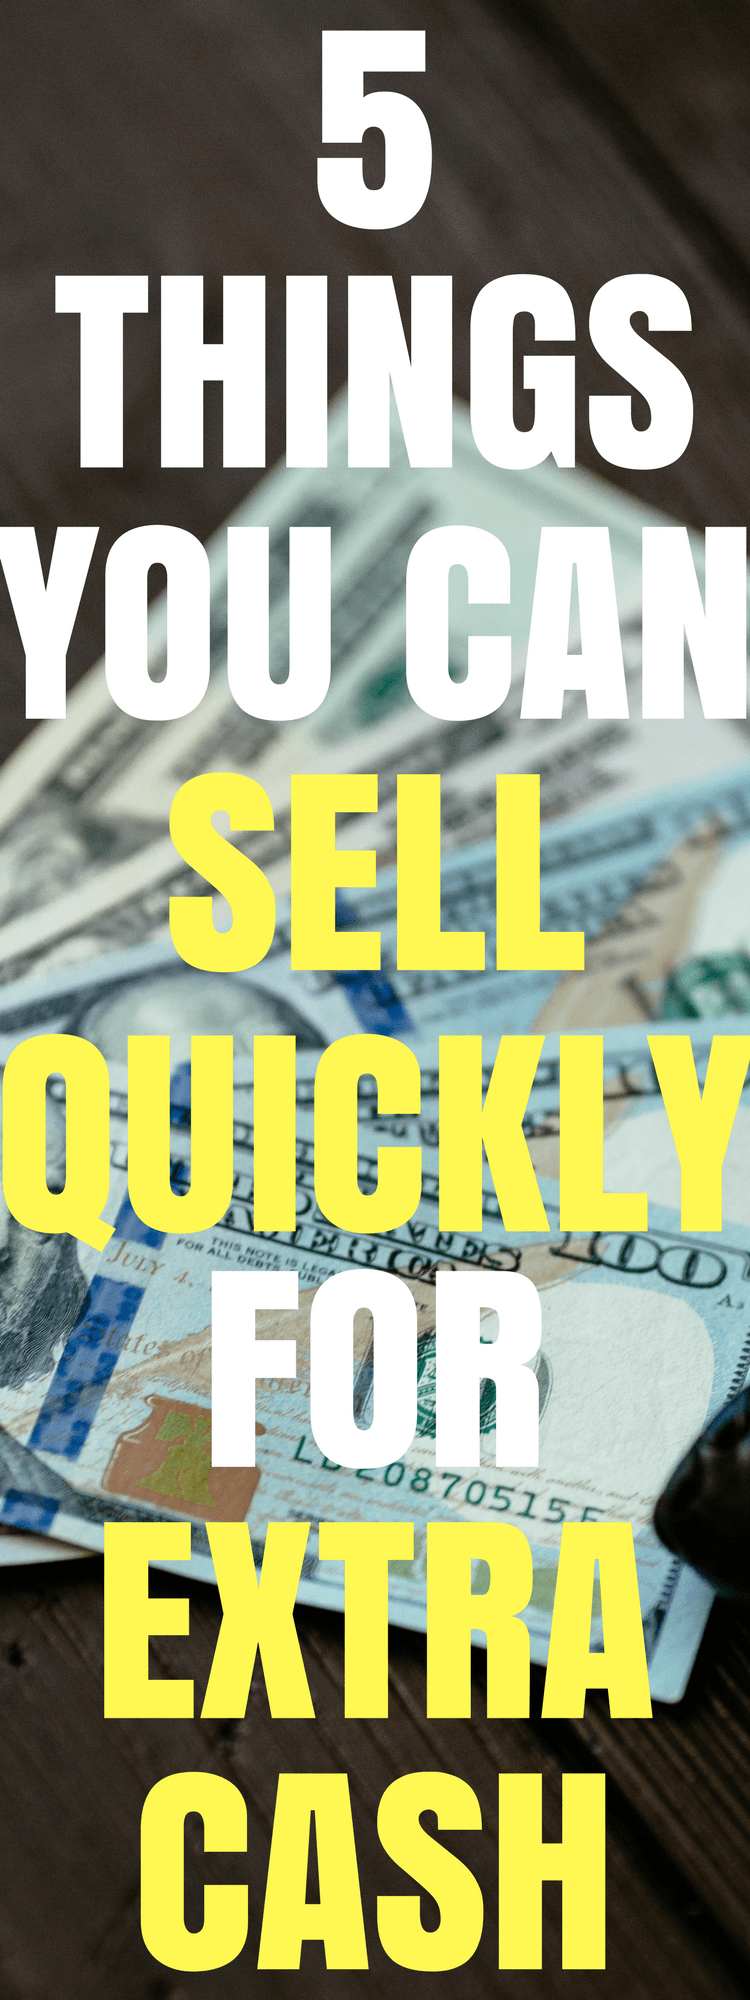 5 things you can sell quickly for extra cash